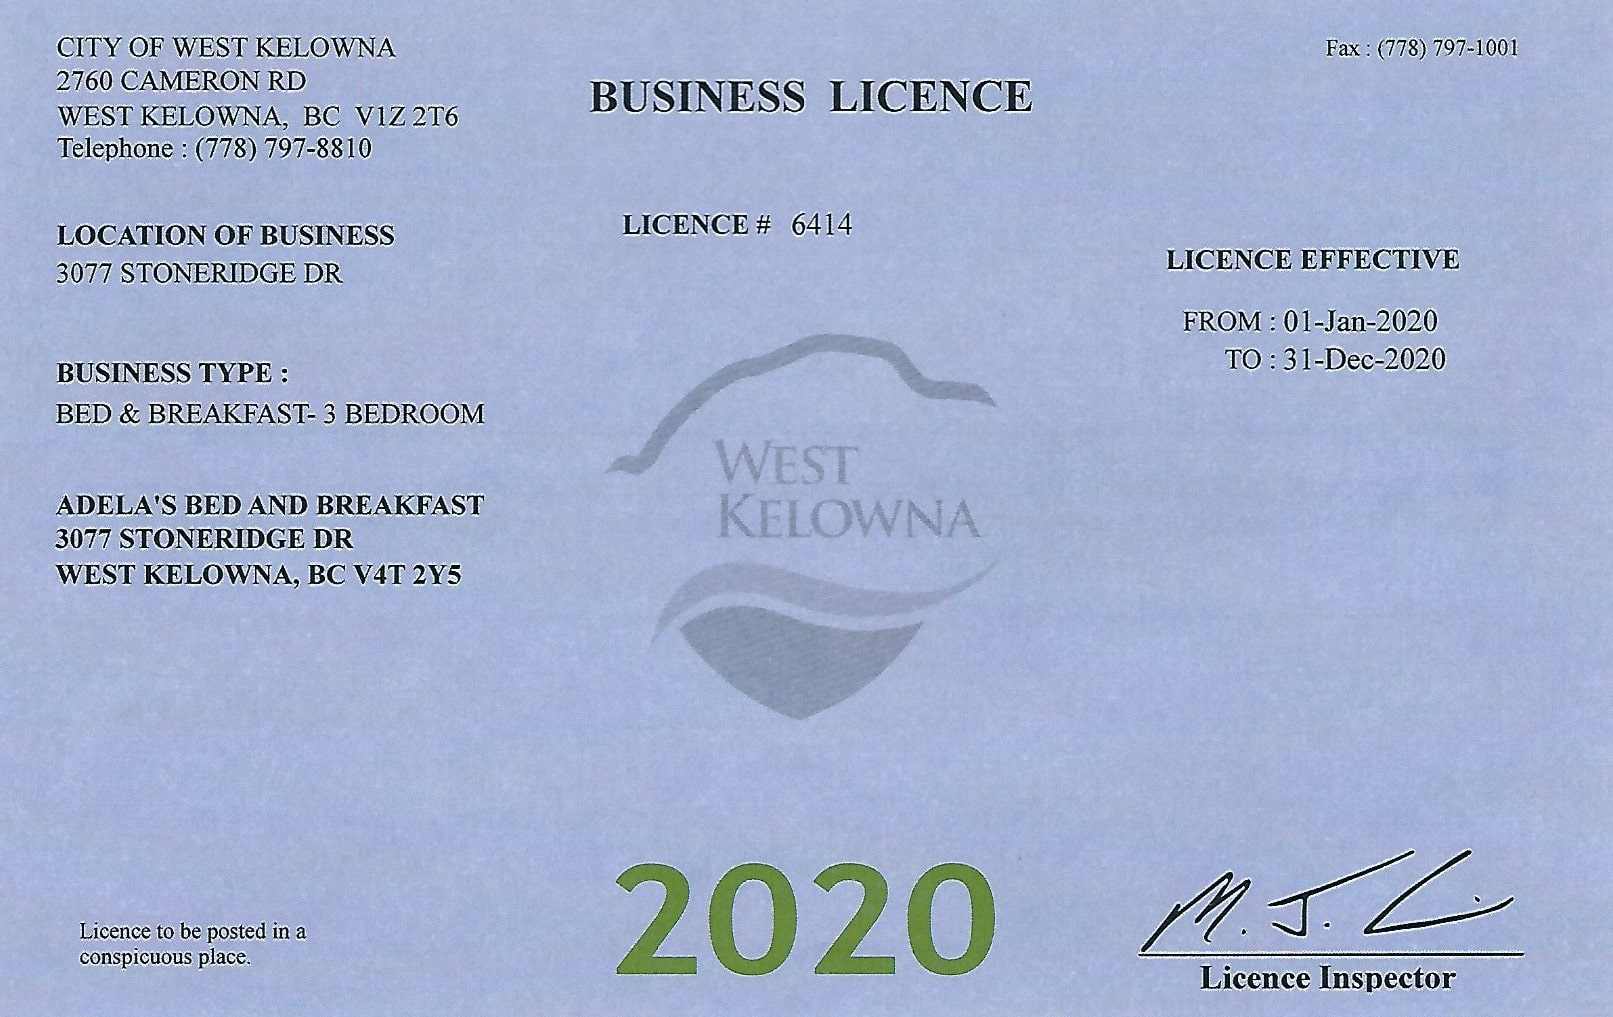 2020 Business License